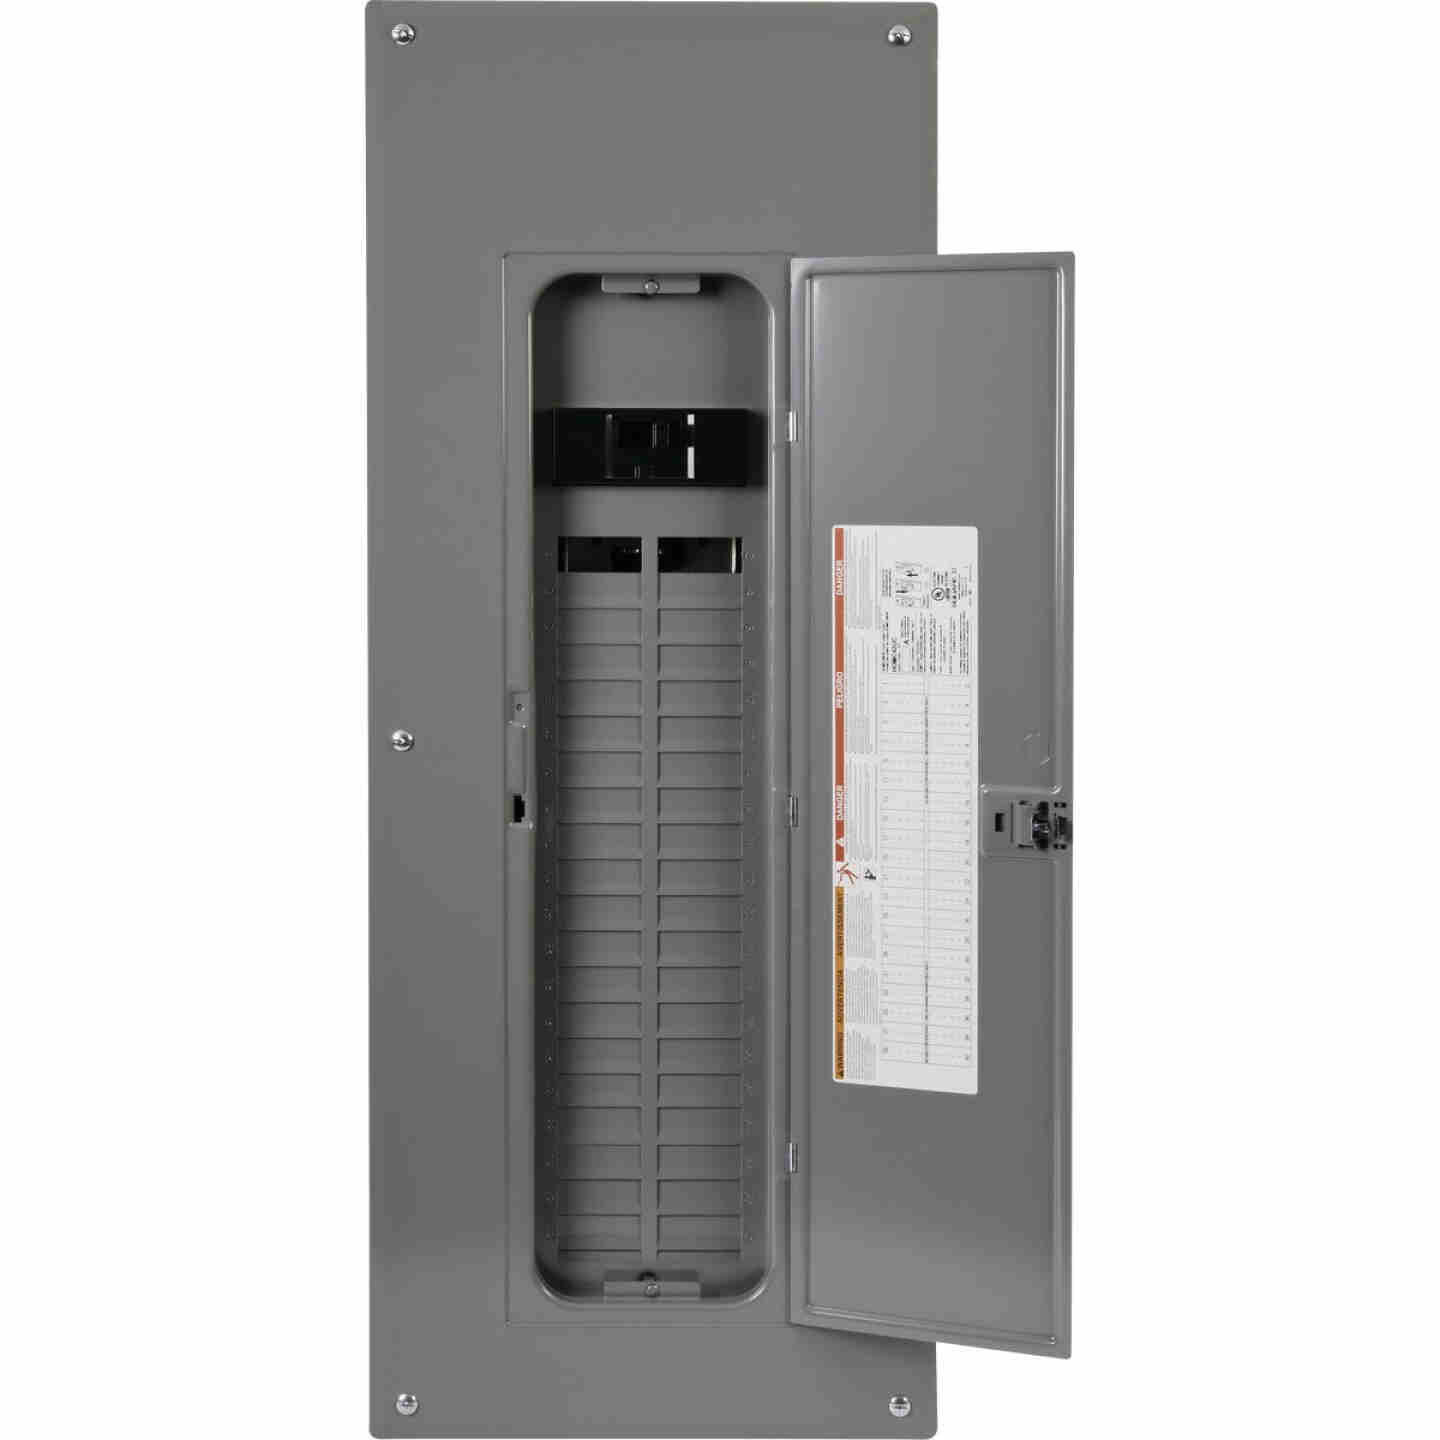 Square D Homeline 200A 40-Space 80-Pole Indoor Meter Breaker Panel Image 1